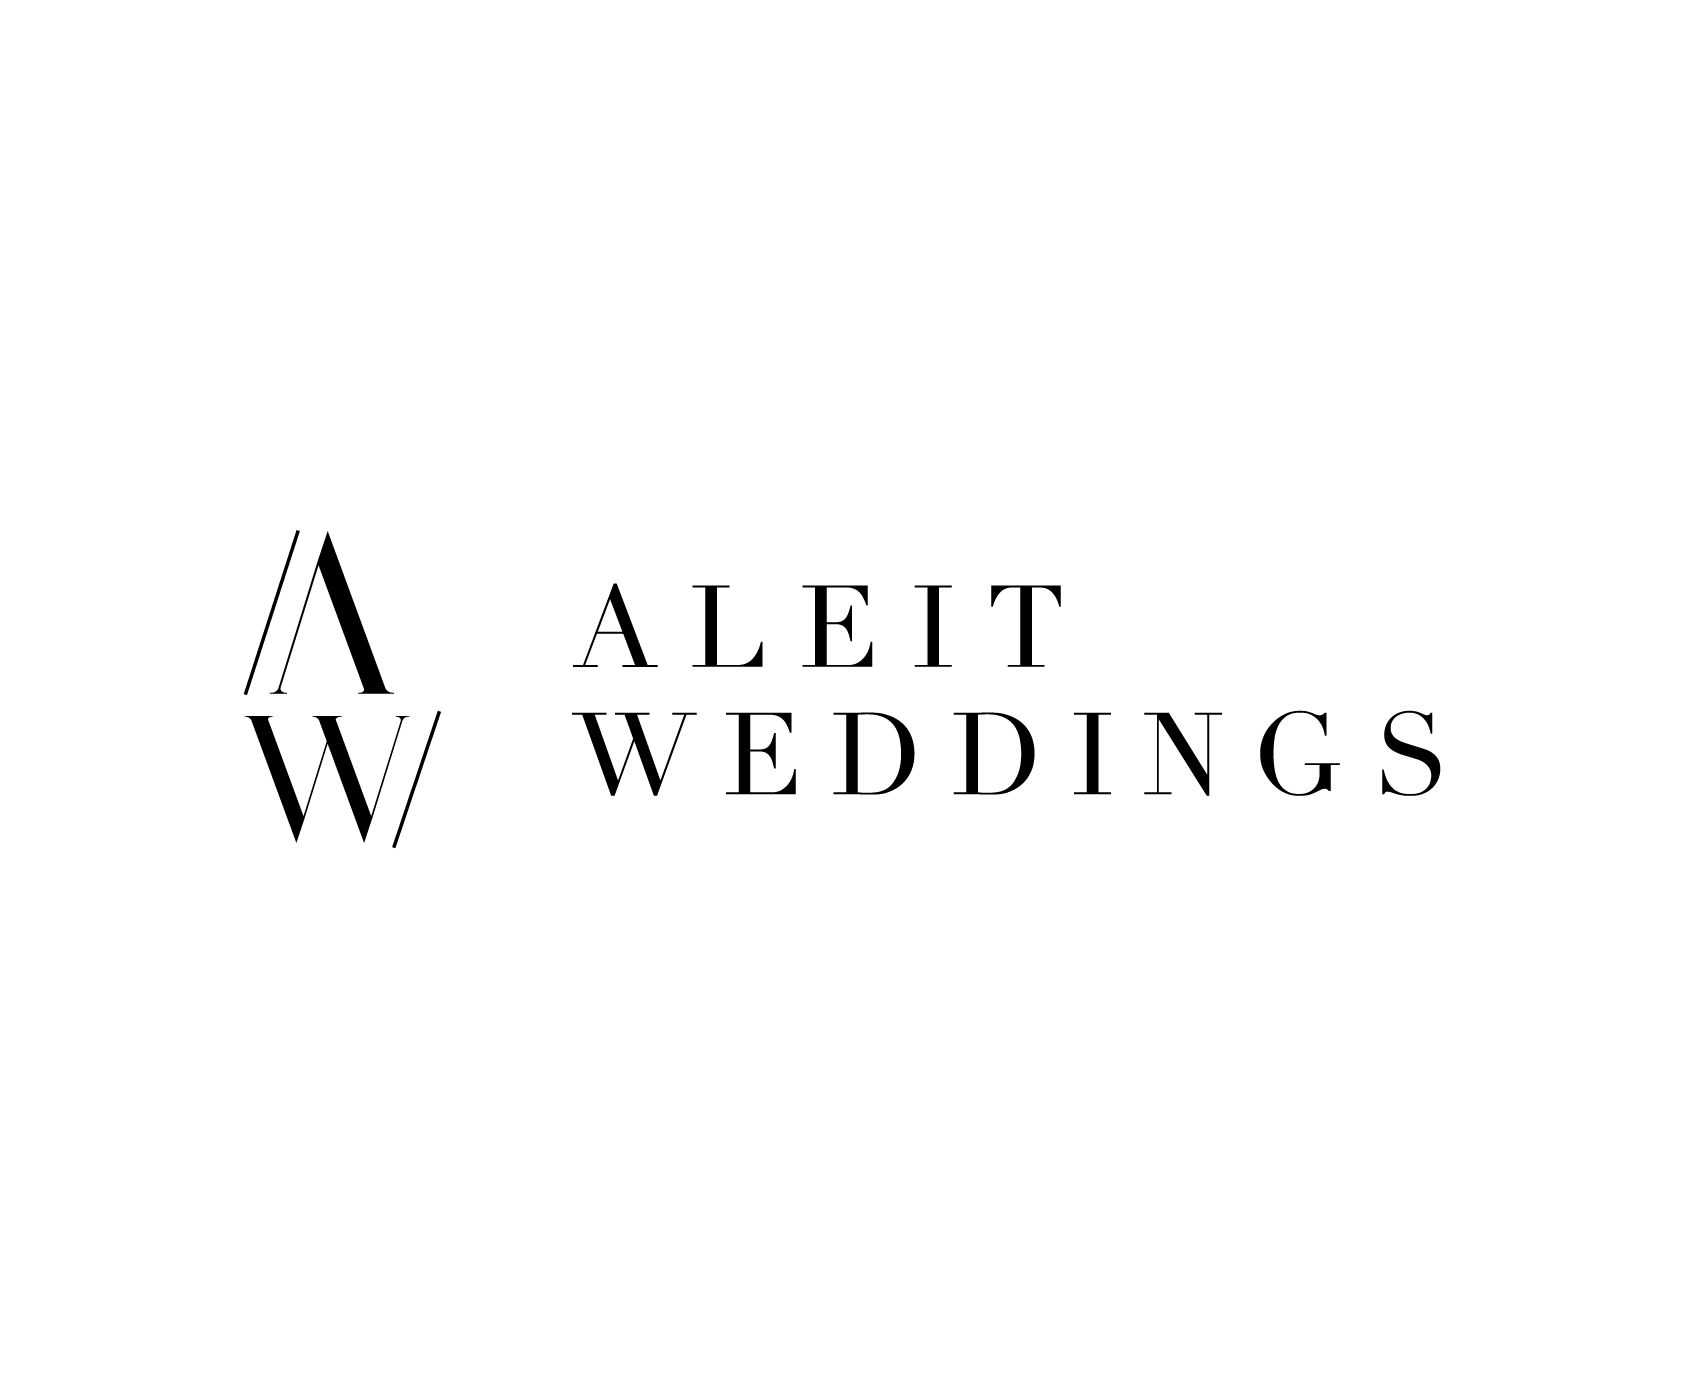 Aleit Swanepoal - Aleit Weddings